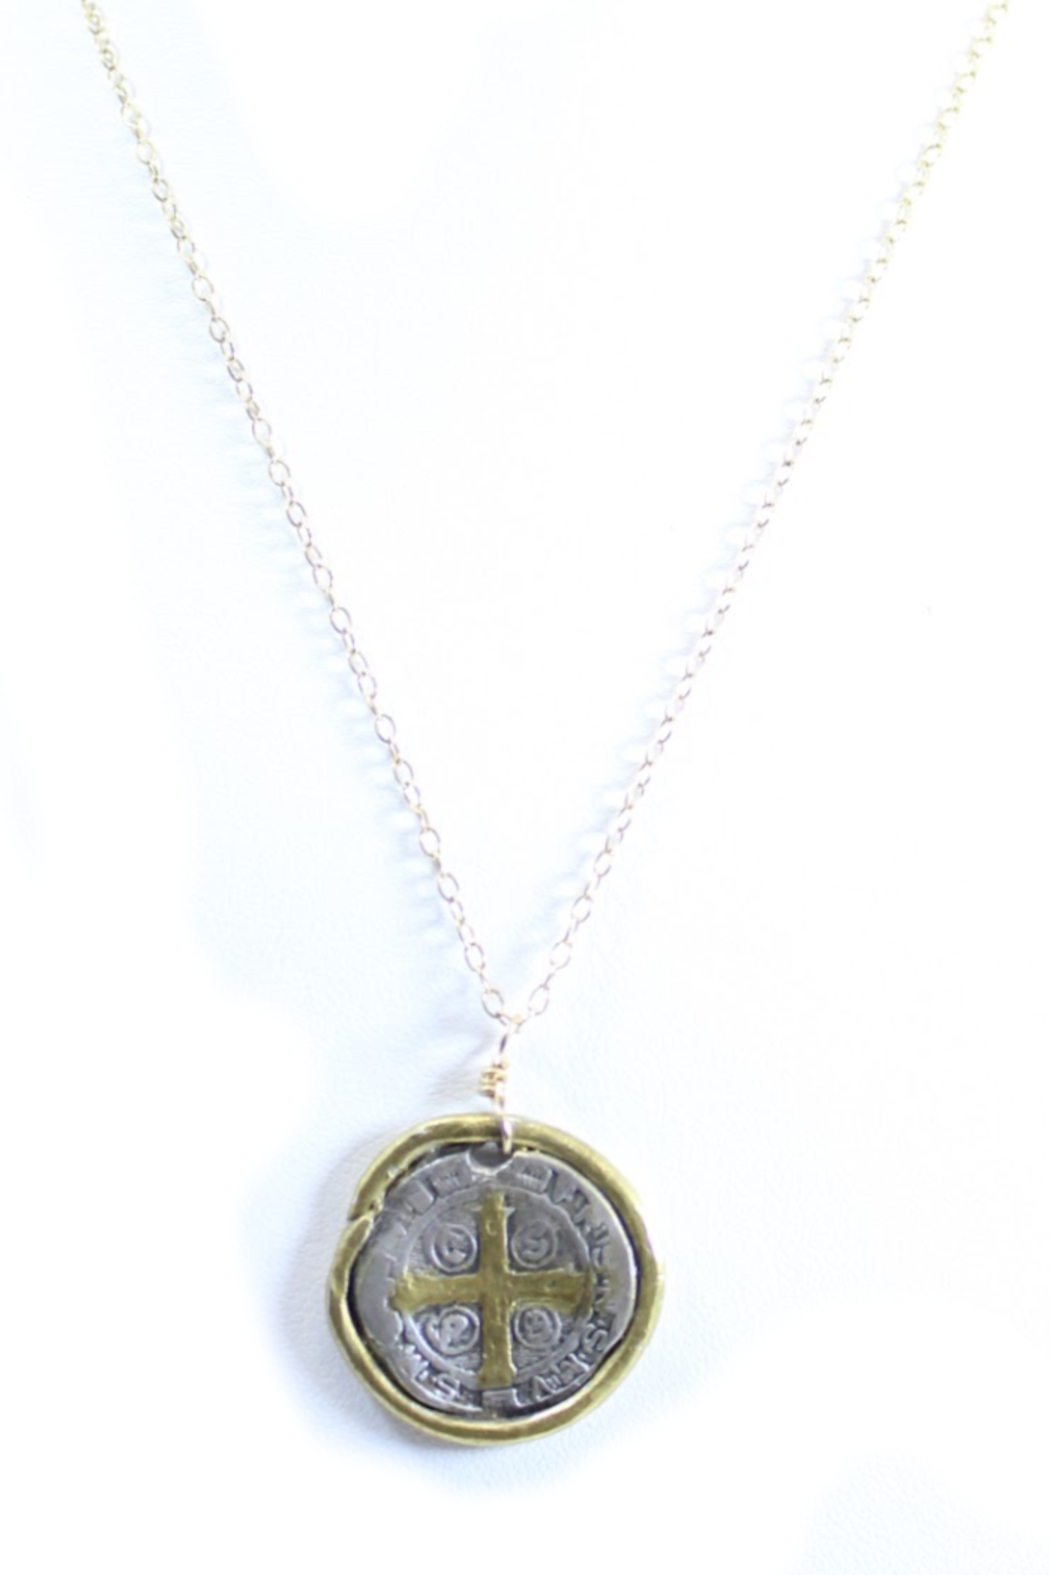 The Birds Nest ST. BENEDICT MEDALLION NECKLACE - 8.5 INCH CHAIN - Main Image